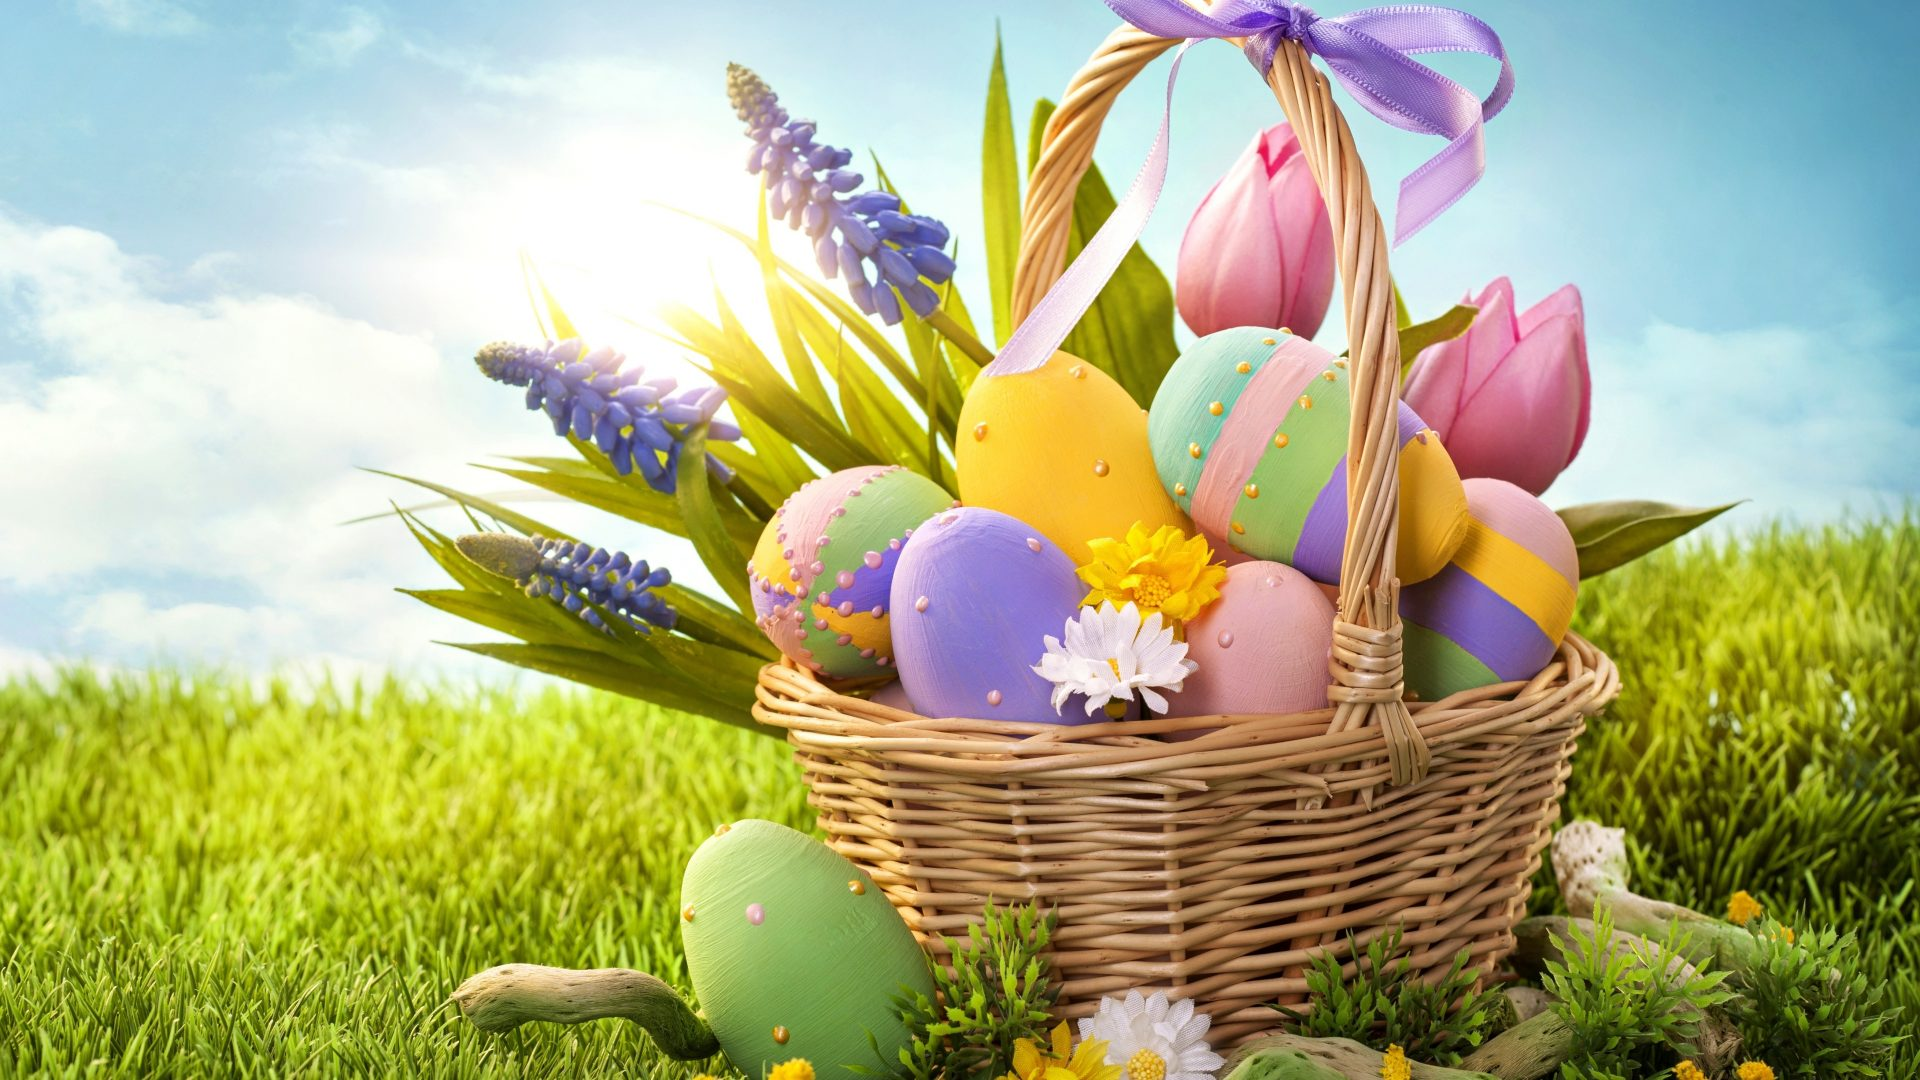 Easter Happy Purple Tulips Grass Clouds Pink Spring Beautiful Flowers Basket Sunlight Yellow Eggs Pastel Sky Free Wallpapers